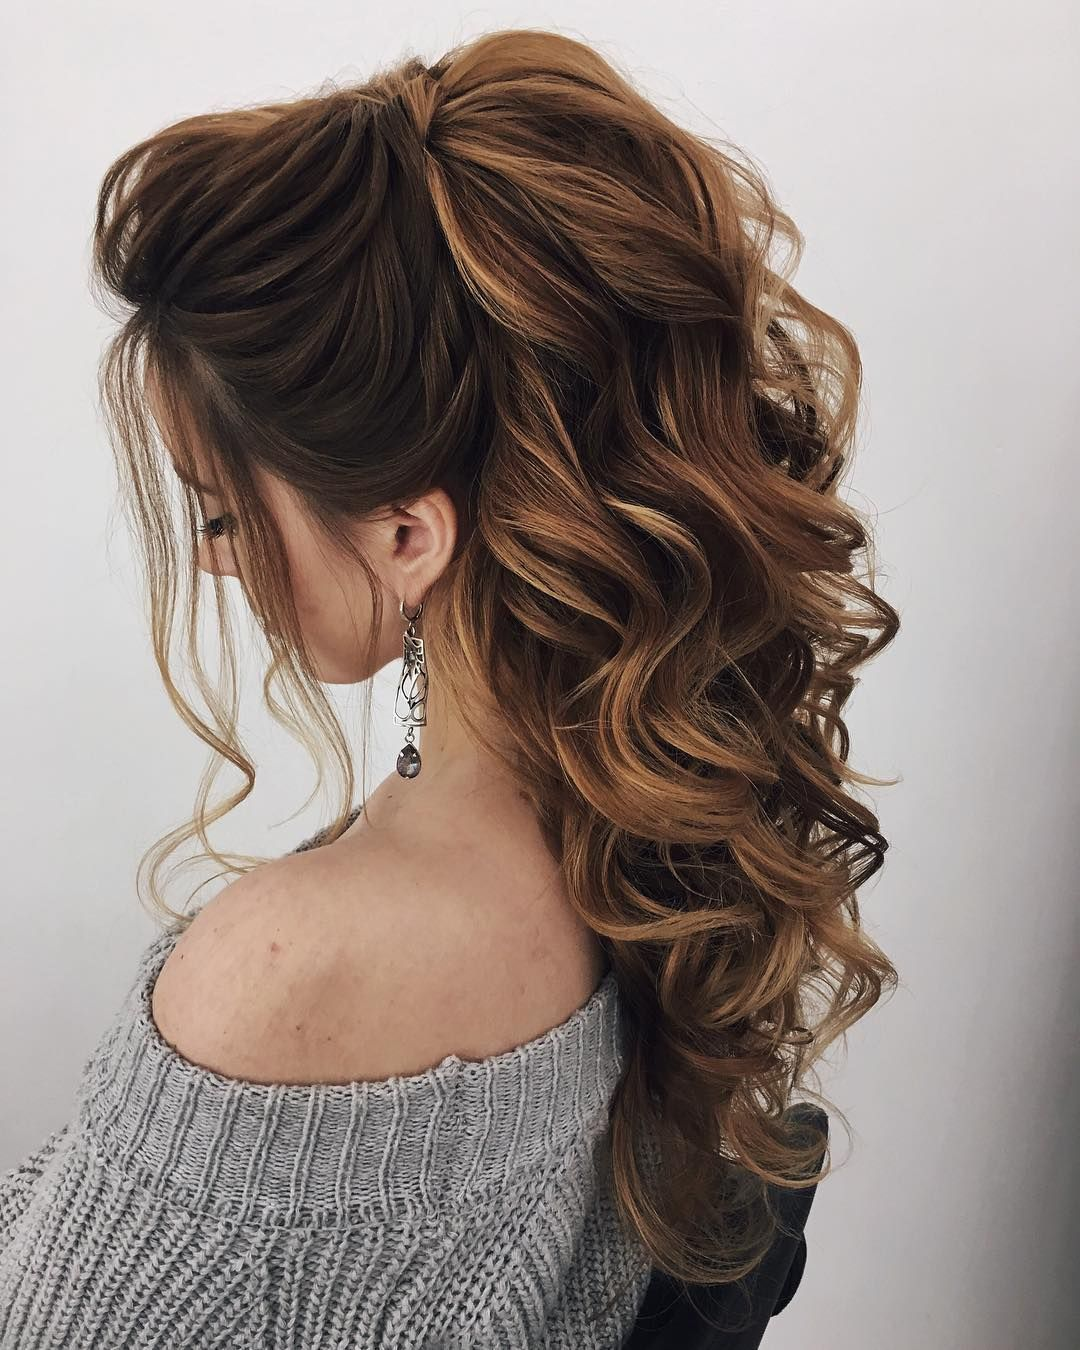 The Best And Fabulous Hairstyles For Every Wedding Dress Neckline Whether You Re A Summer Winter Brid Strapless Dress Hairstyles Hair Styles Dress Hairstyles